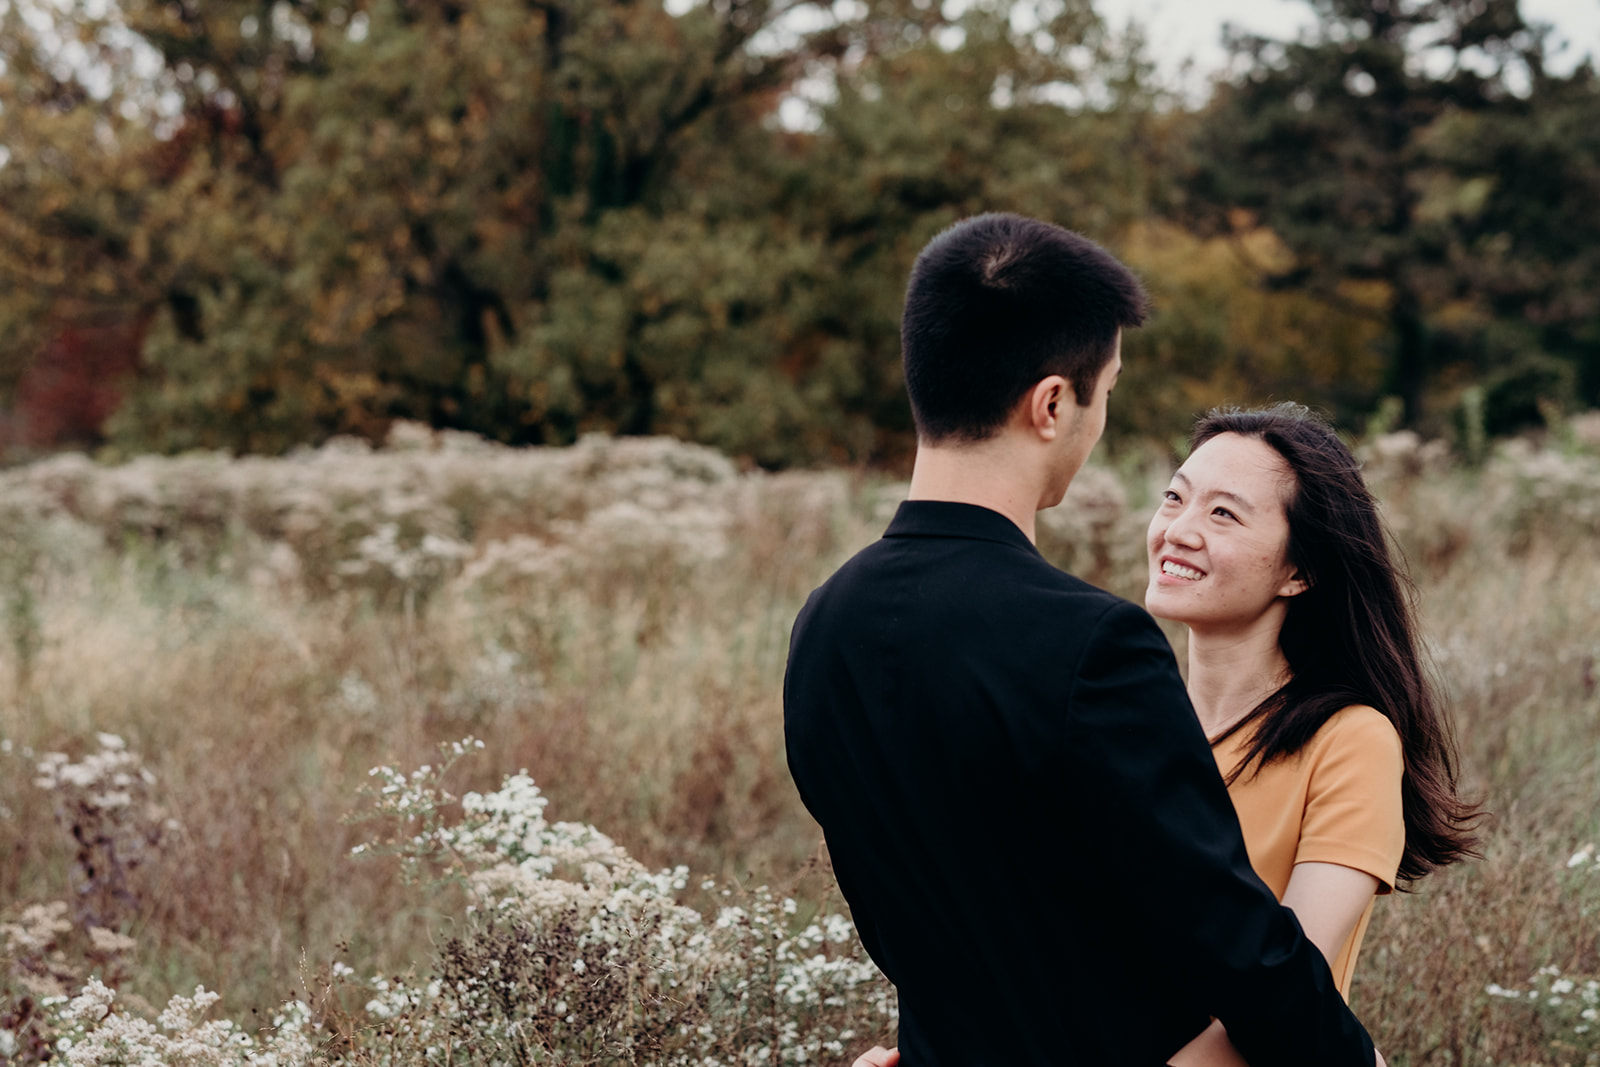 An engaged couple embraces in a field of wildflowers at the National Arboretum.